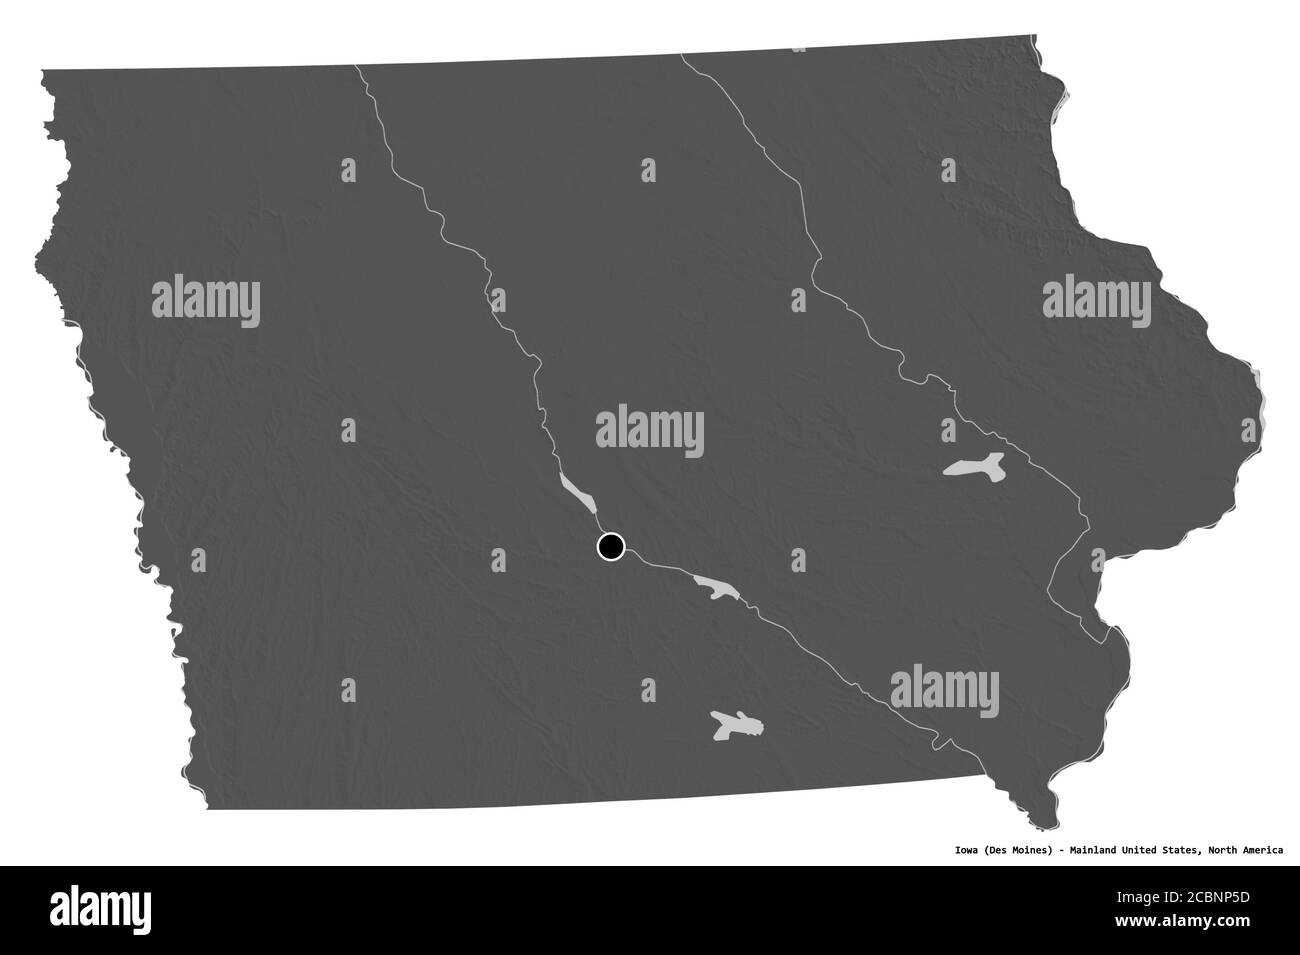 shape of iowa state of mainland united states with its capital isolated on white background bilevel elevation map 3d rendering stock photo alamy alamy